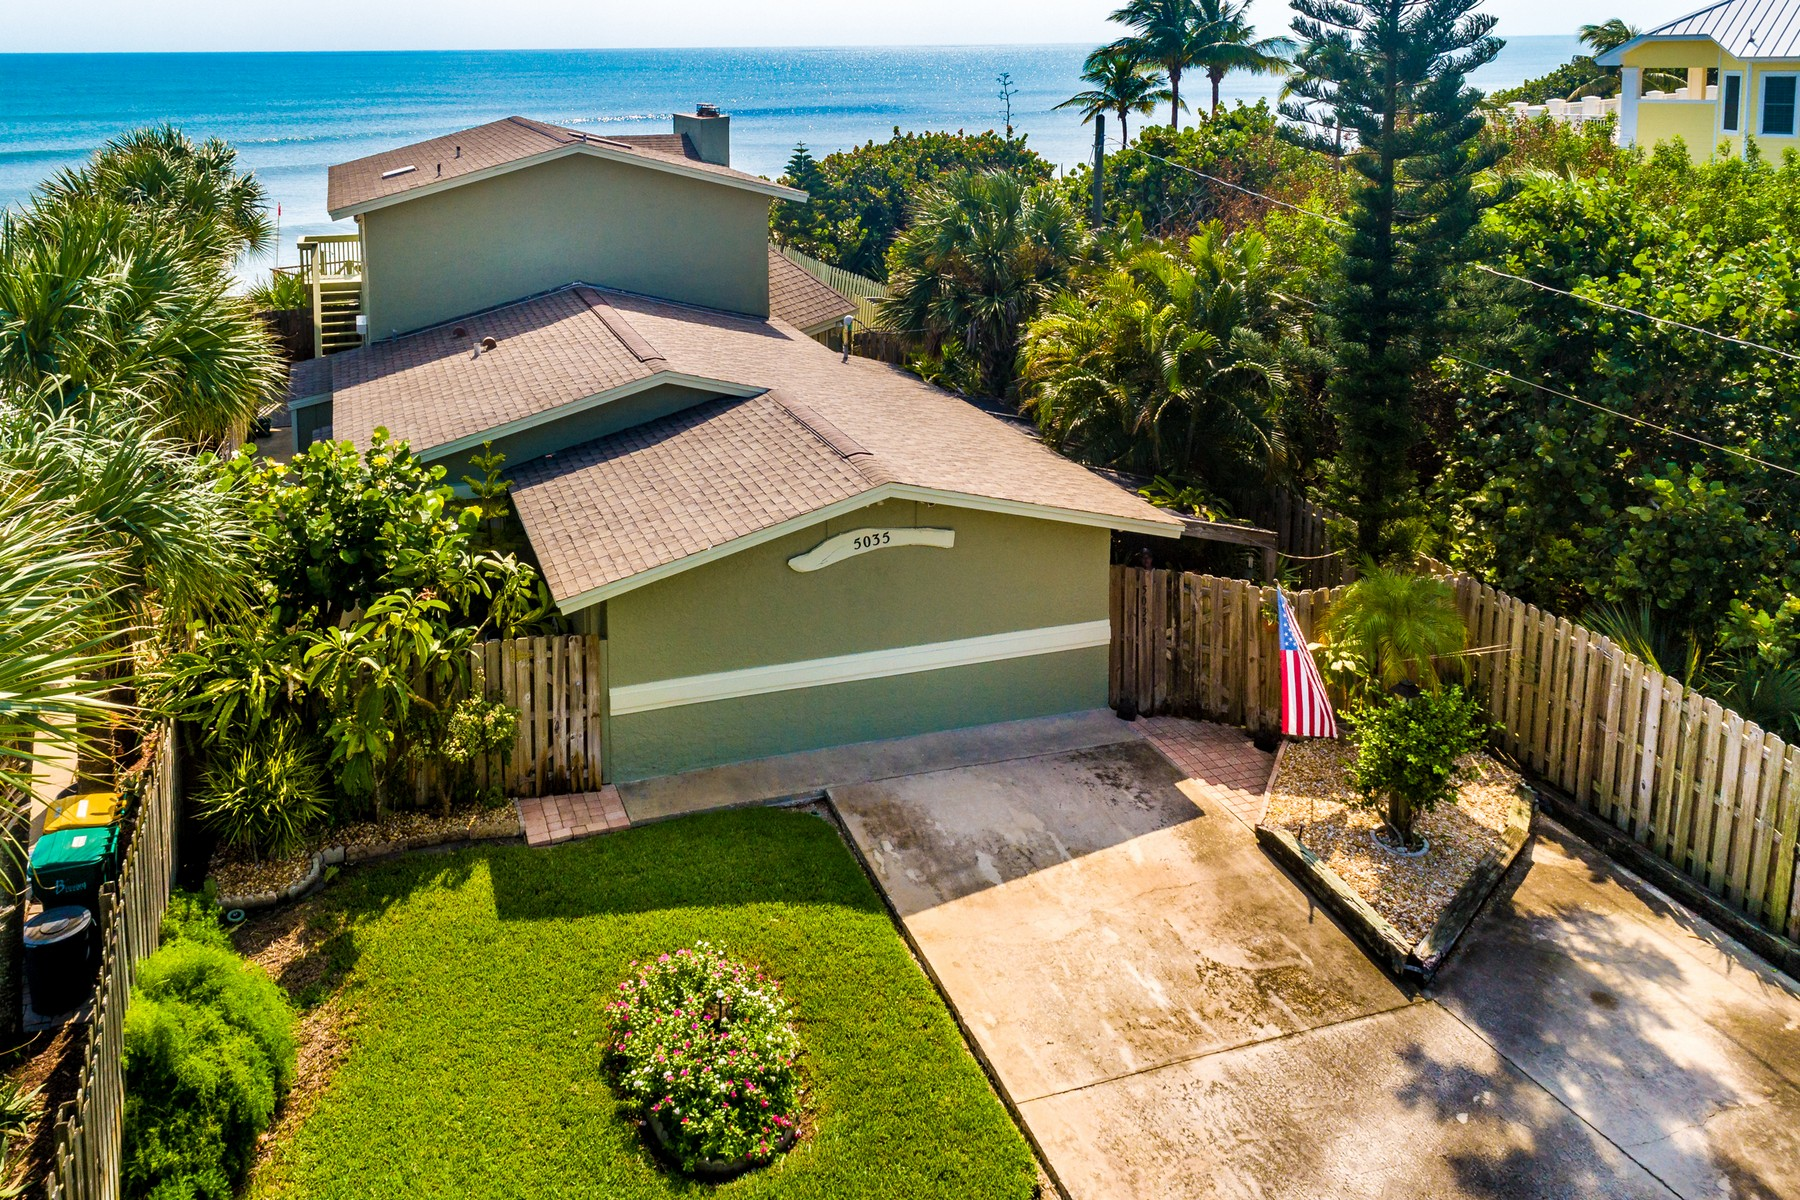 Single Family Homes for Sale at Oceanfront Home with Incredible Ocean Views Along Beautiful Melbourne Beach 5035 Highway A1A Melbourne Beach, Florida 32951 United States